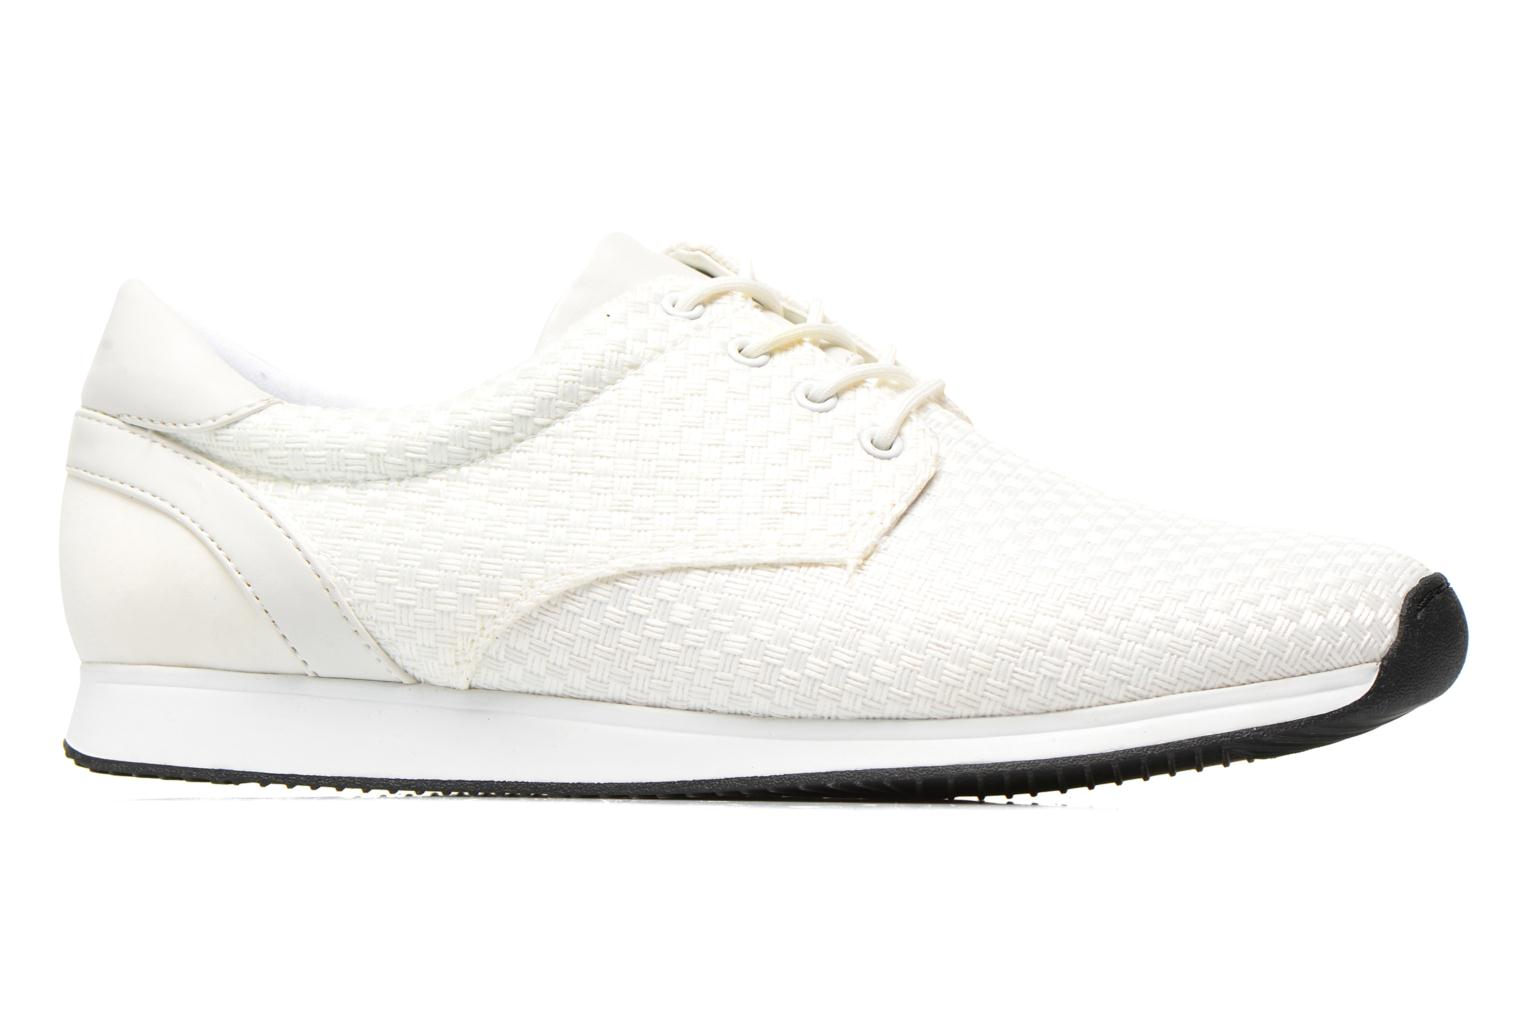 Baskets Vagabond Shoemakers Kasai 4125-181 Blanc vue derrière